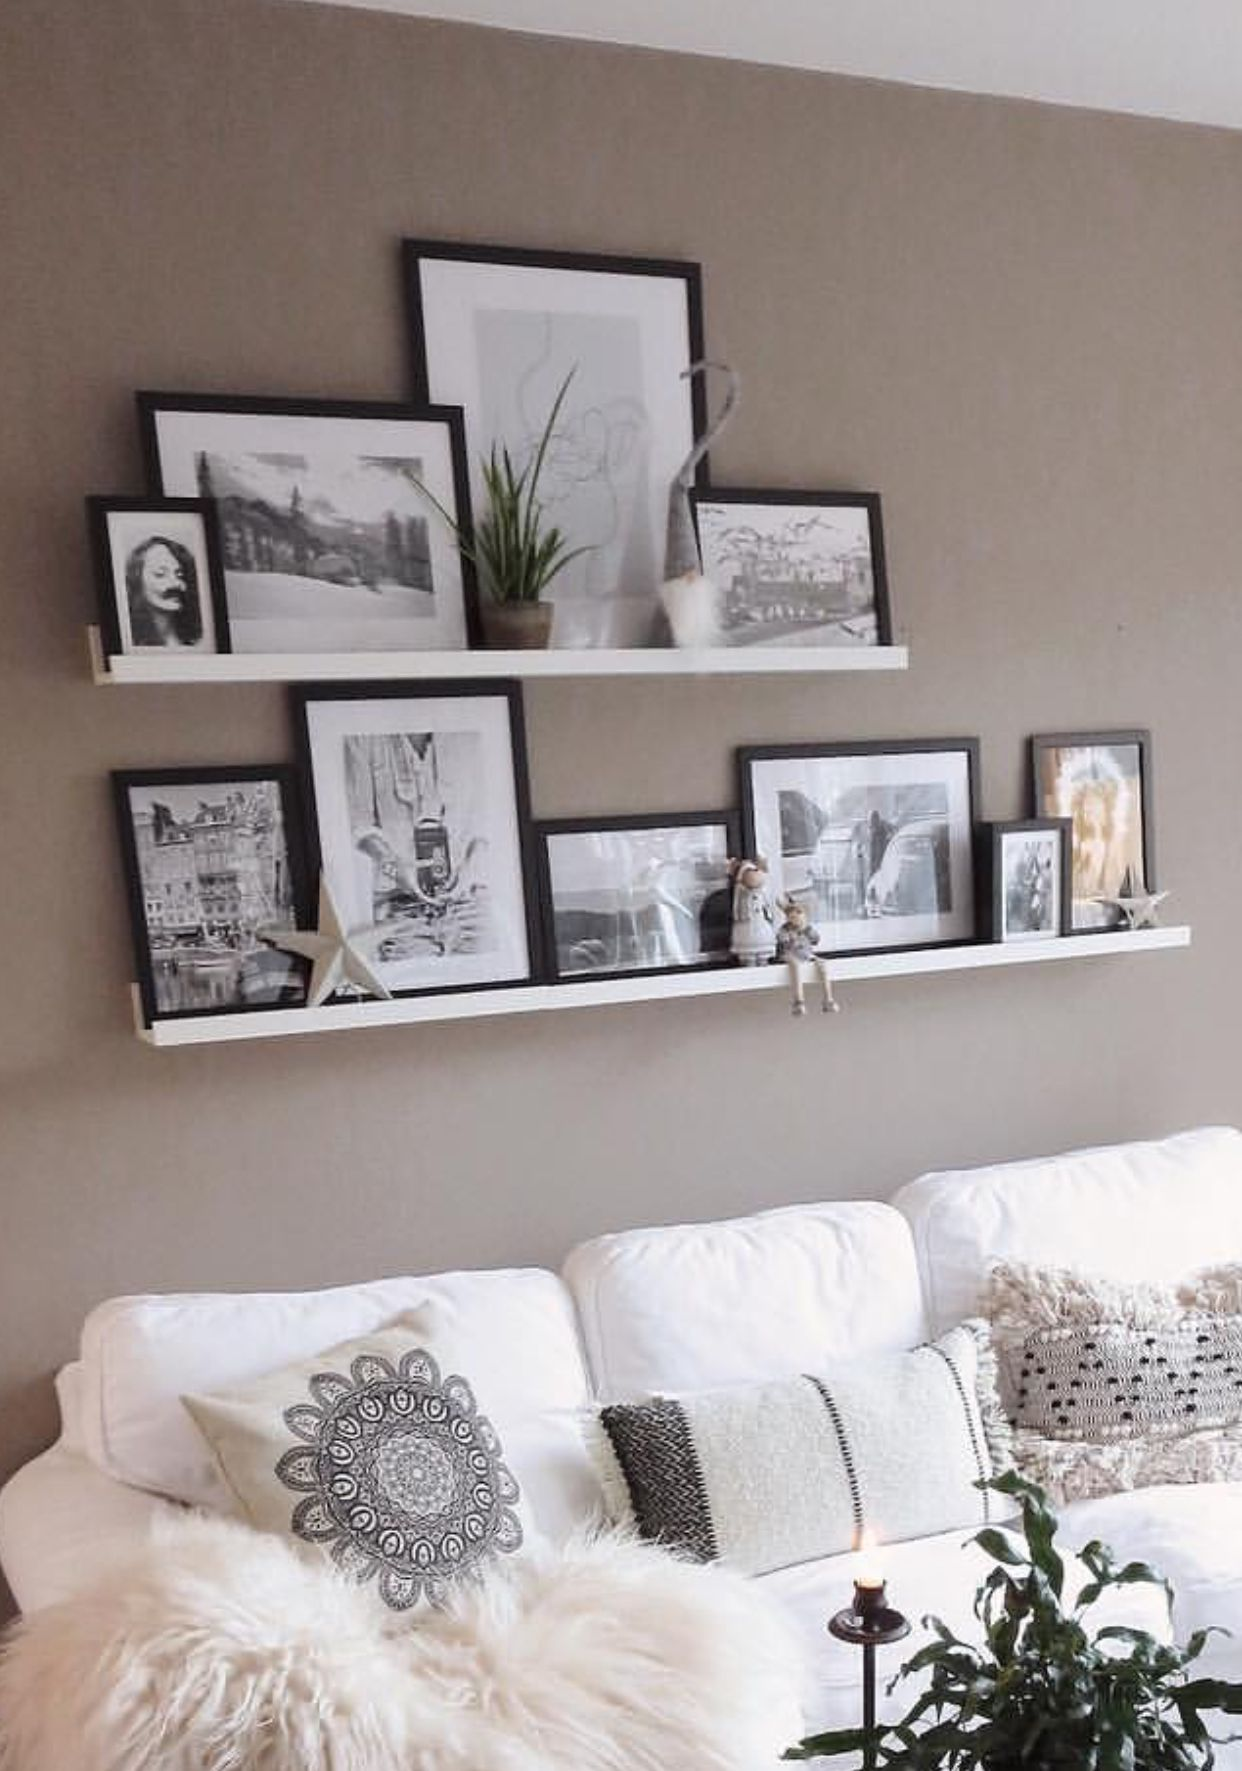 75 Smart Diy Floating Shelves For Living Room Decorating Ideas